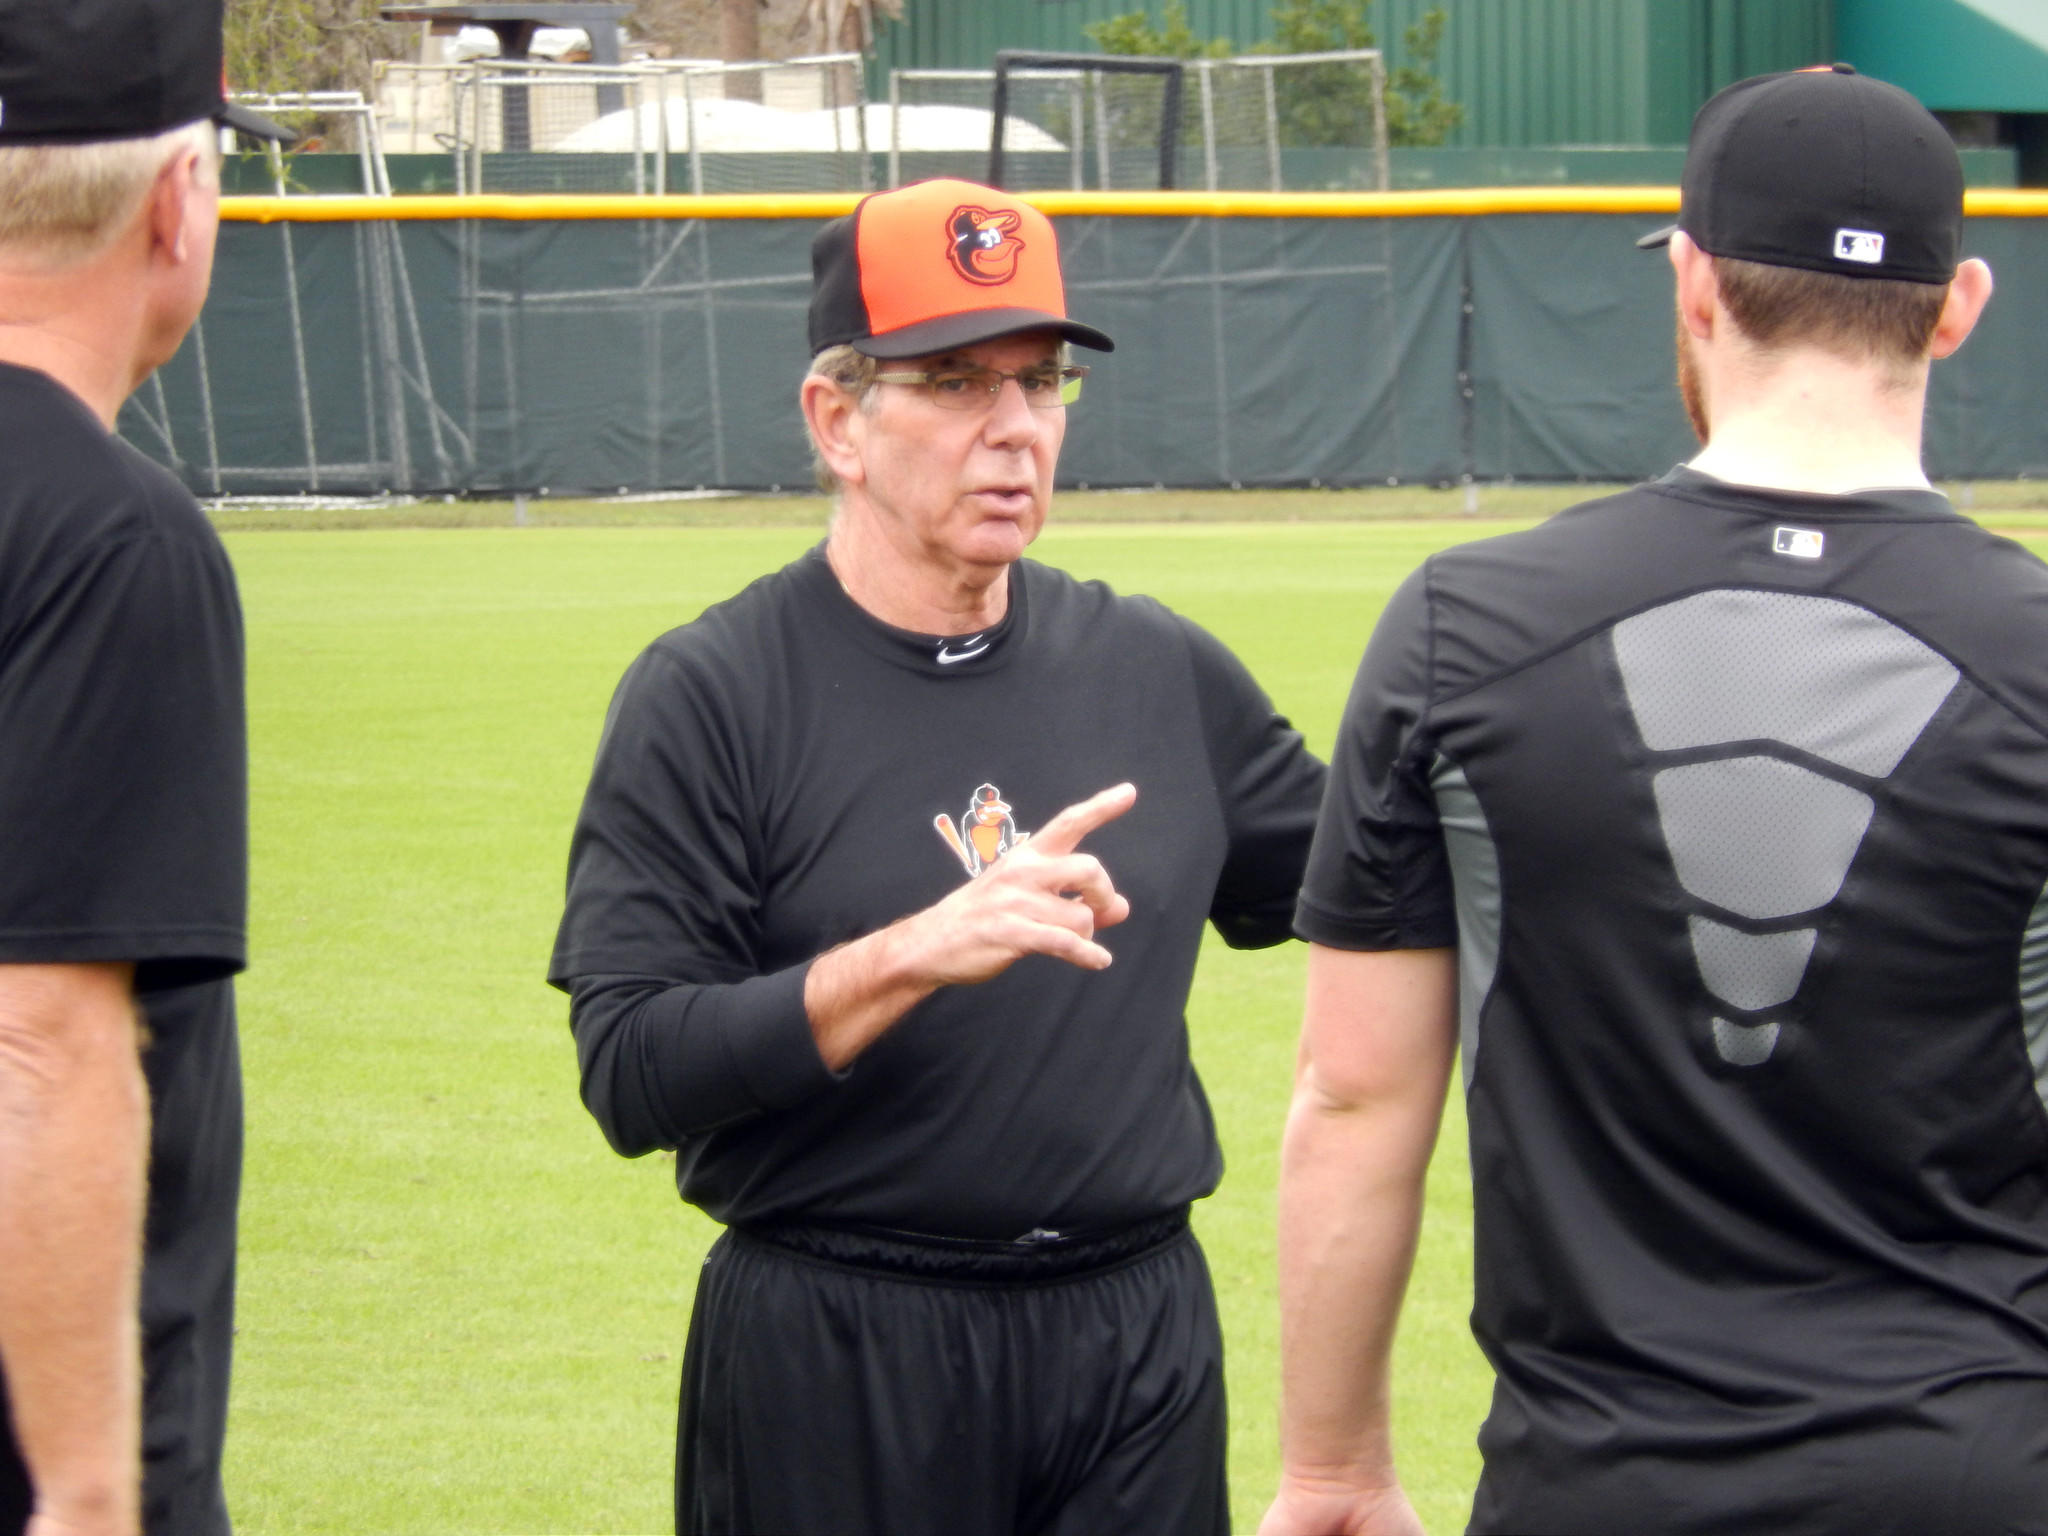 Orioles pitching coach Dave Wallace instructs his pitchers before they separate for station drills earlier this month in Sarasota, Fla.